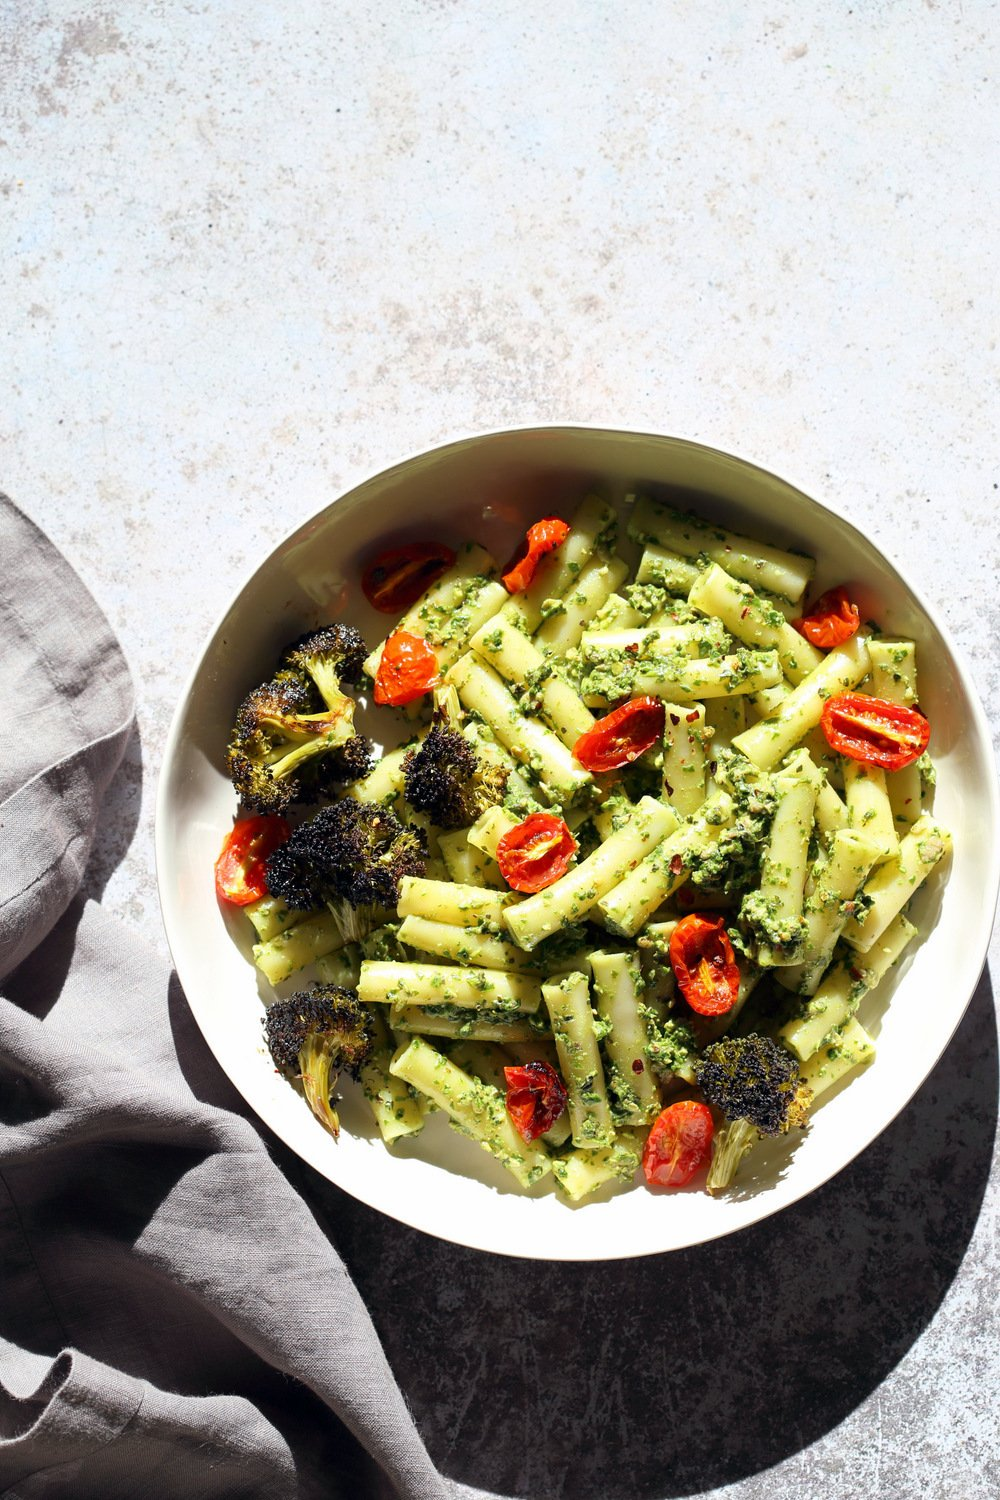 Vegan Pesto Pasta with Charred Broccoli. Easy Vegan Pesto with Ziti, served with roasted cherry tomatoes and roasted broccoli. 21 Gm of Protein #Vegan #Soyfree #Recipe #VeganRicha. Can be #glutenfree and #nutfree | VeganRicha.com